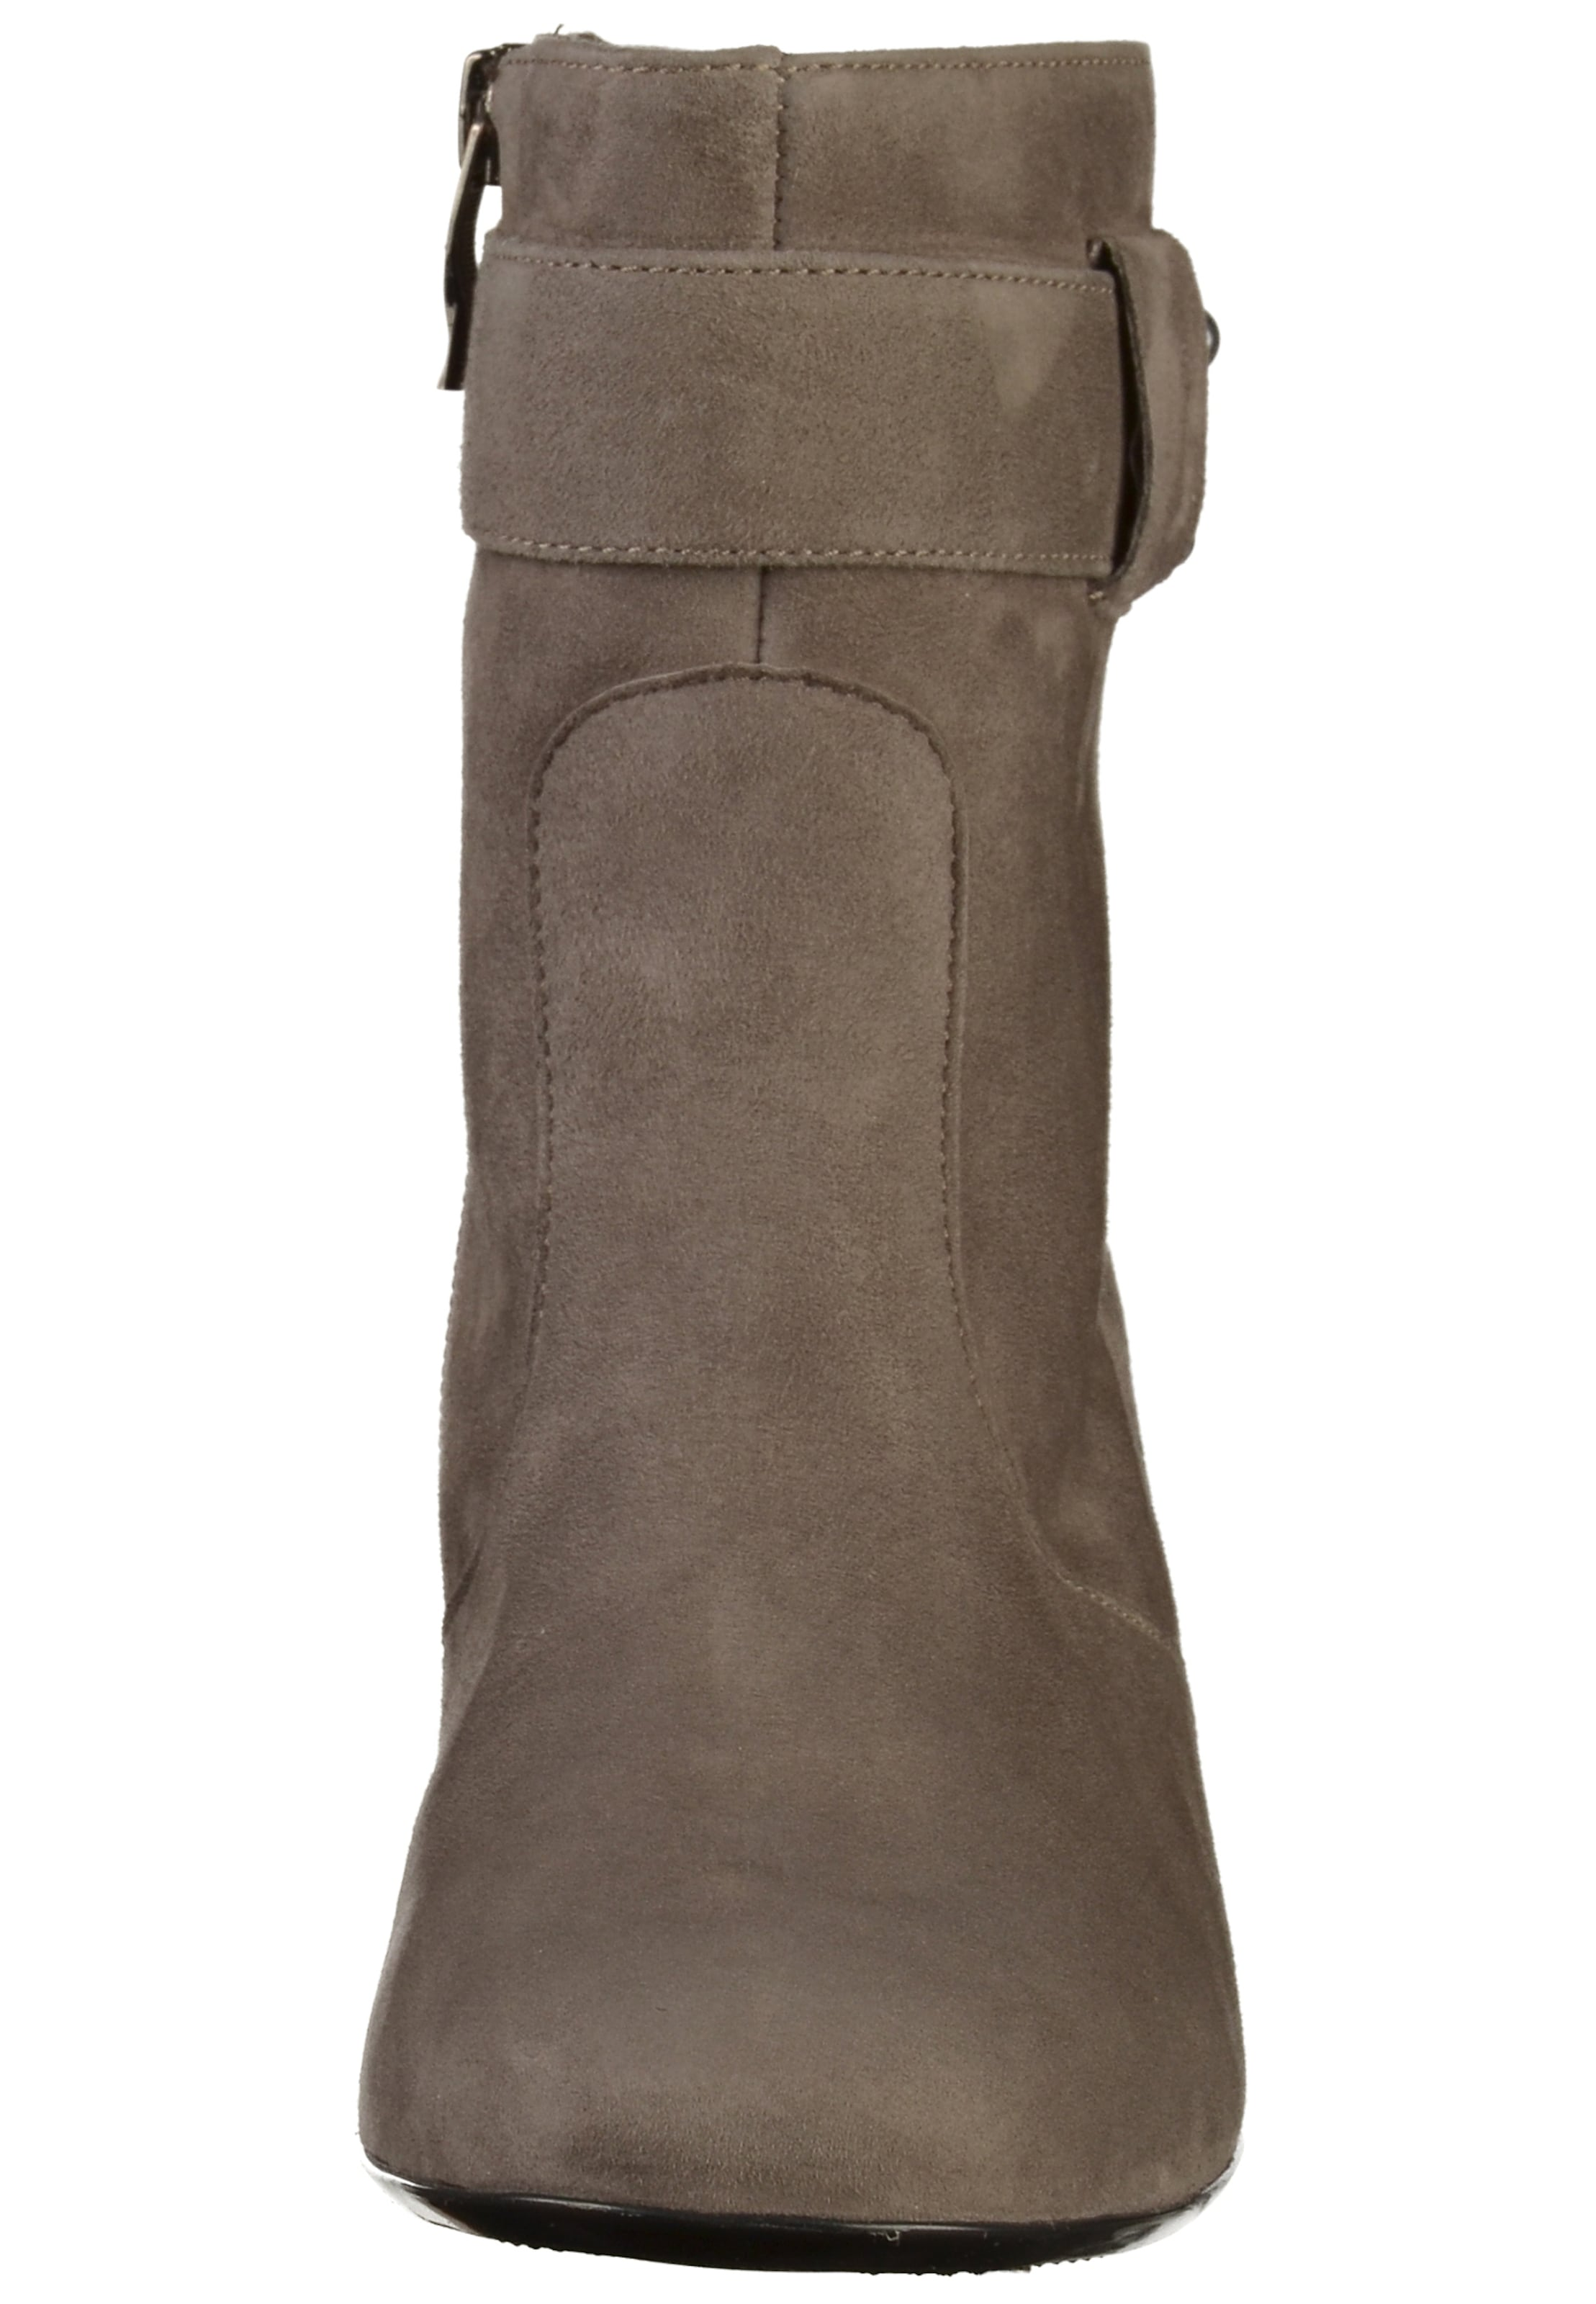 Ara Ara Bottines Taupe Bottines Taupe En Ara En 0PwOnk